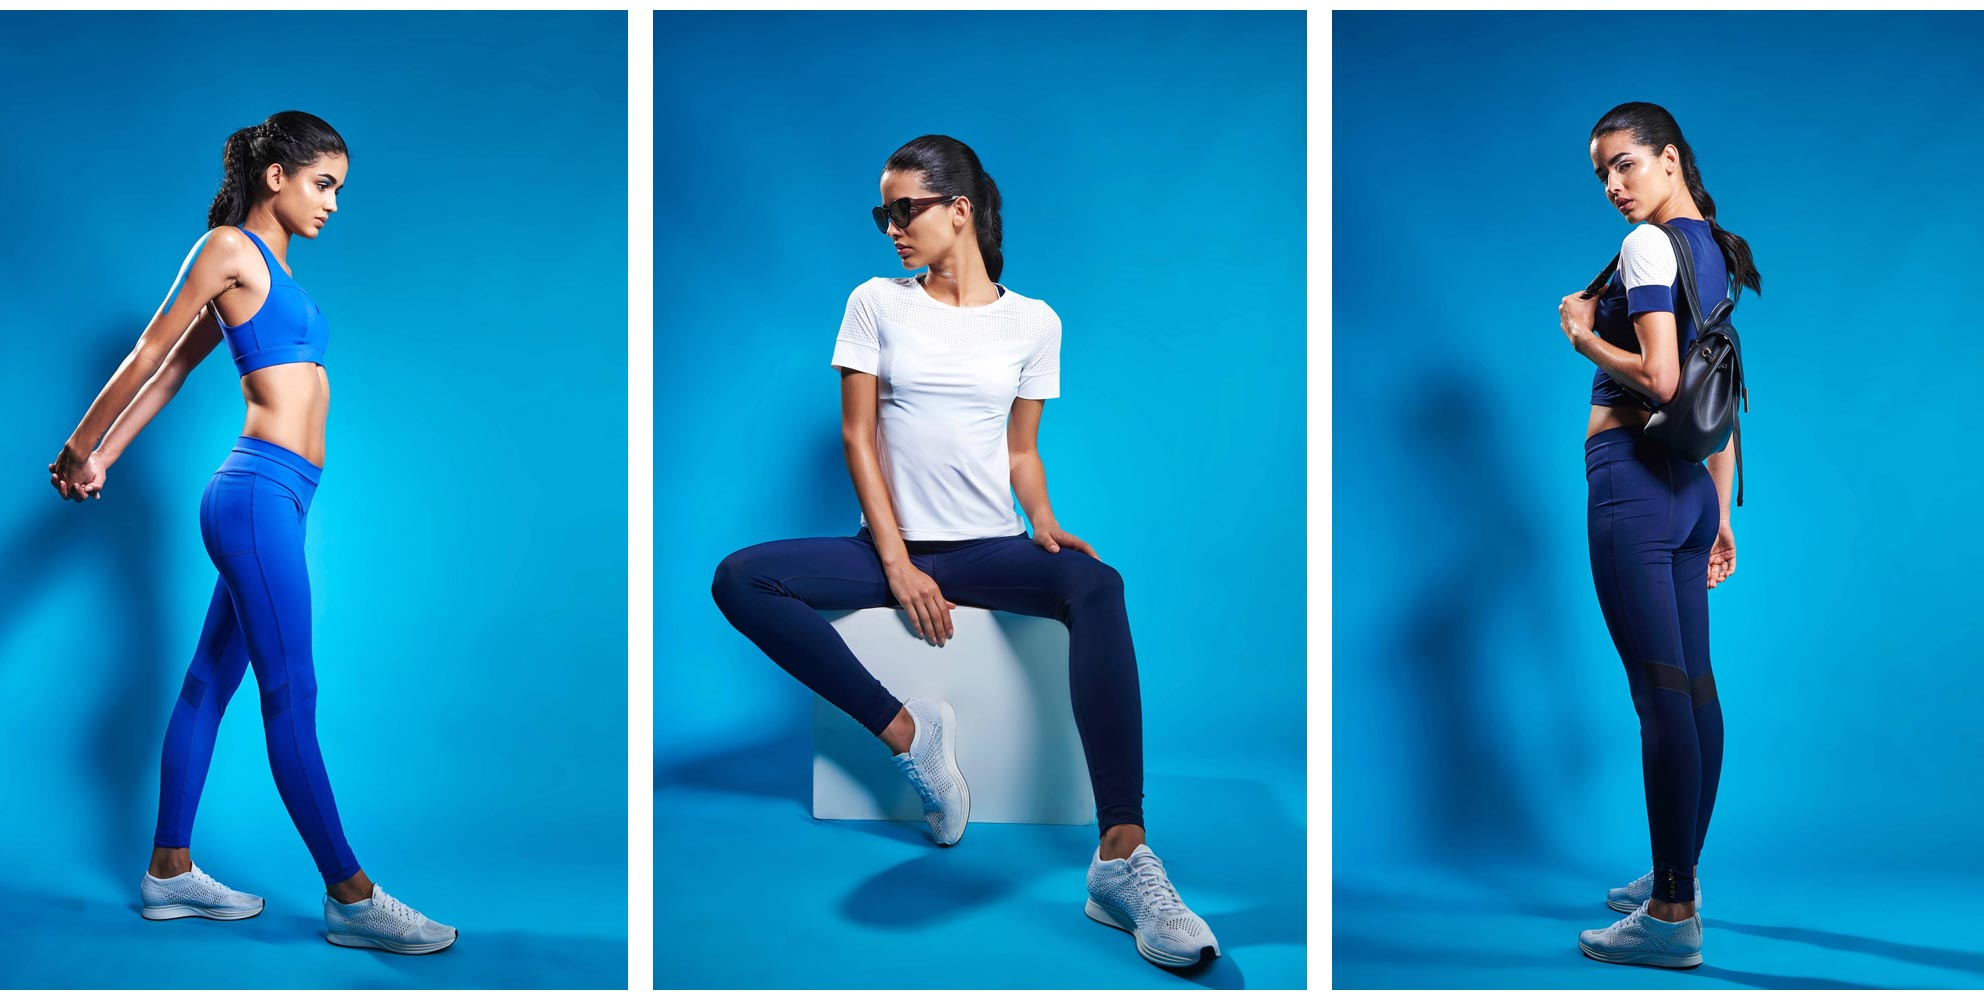 Adrenna Launches Activewear With Women At Its Heart 6